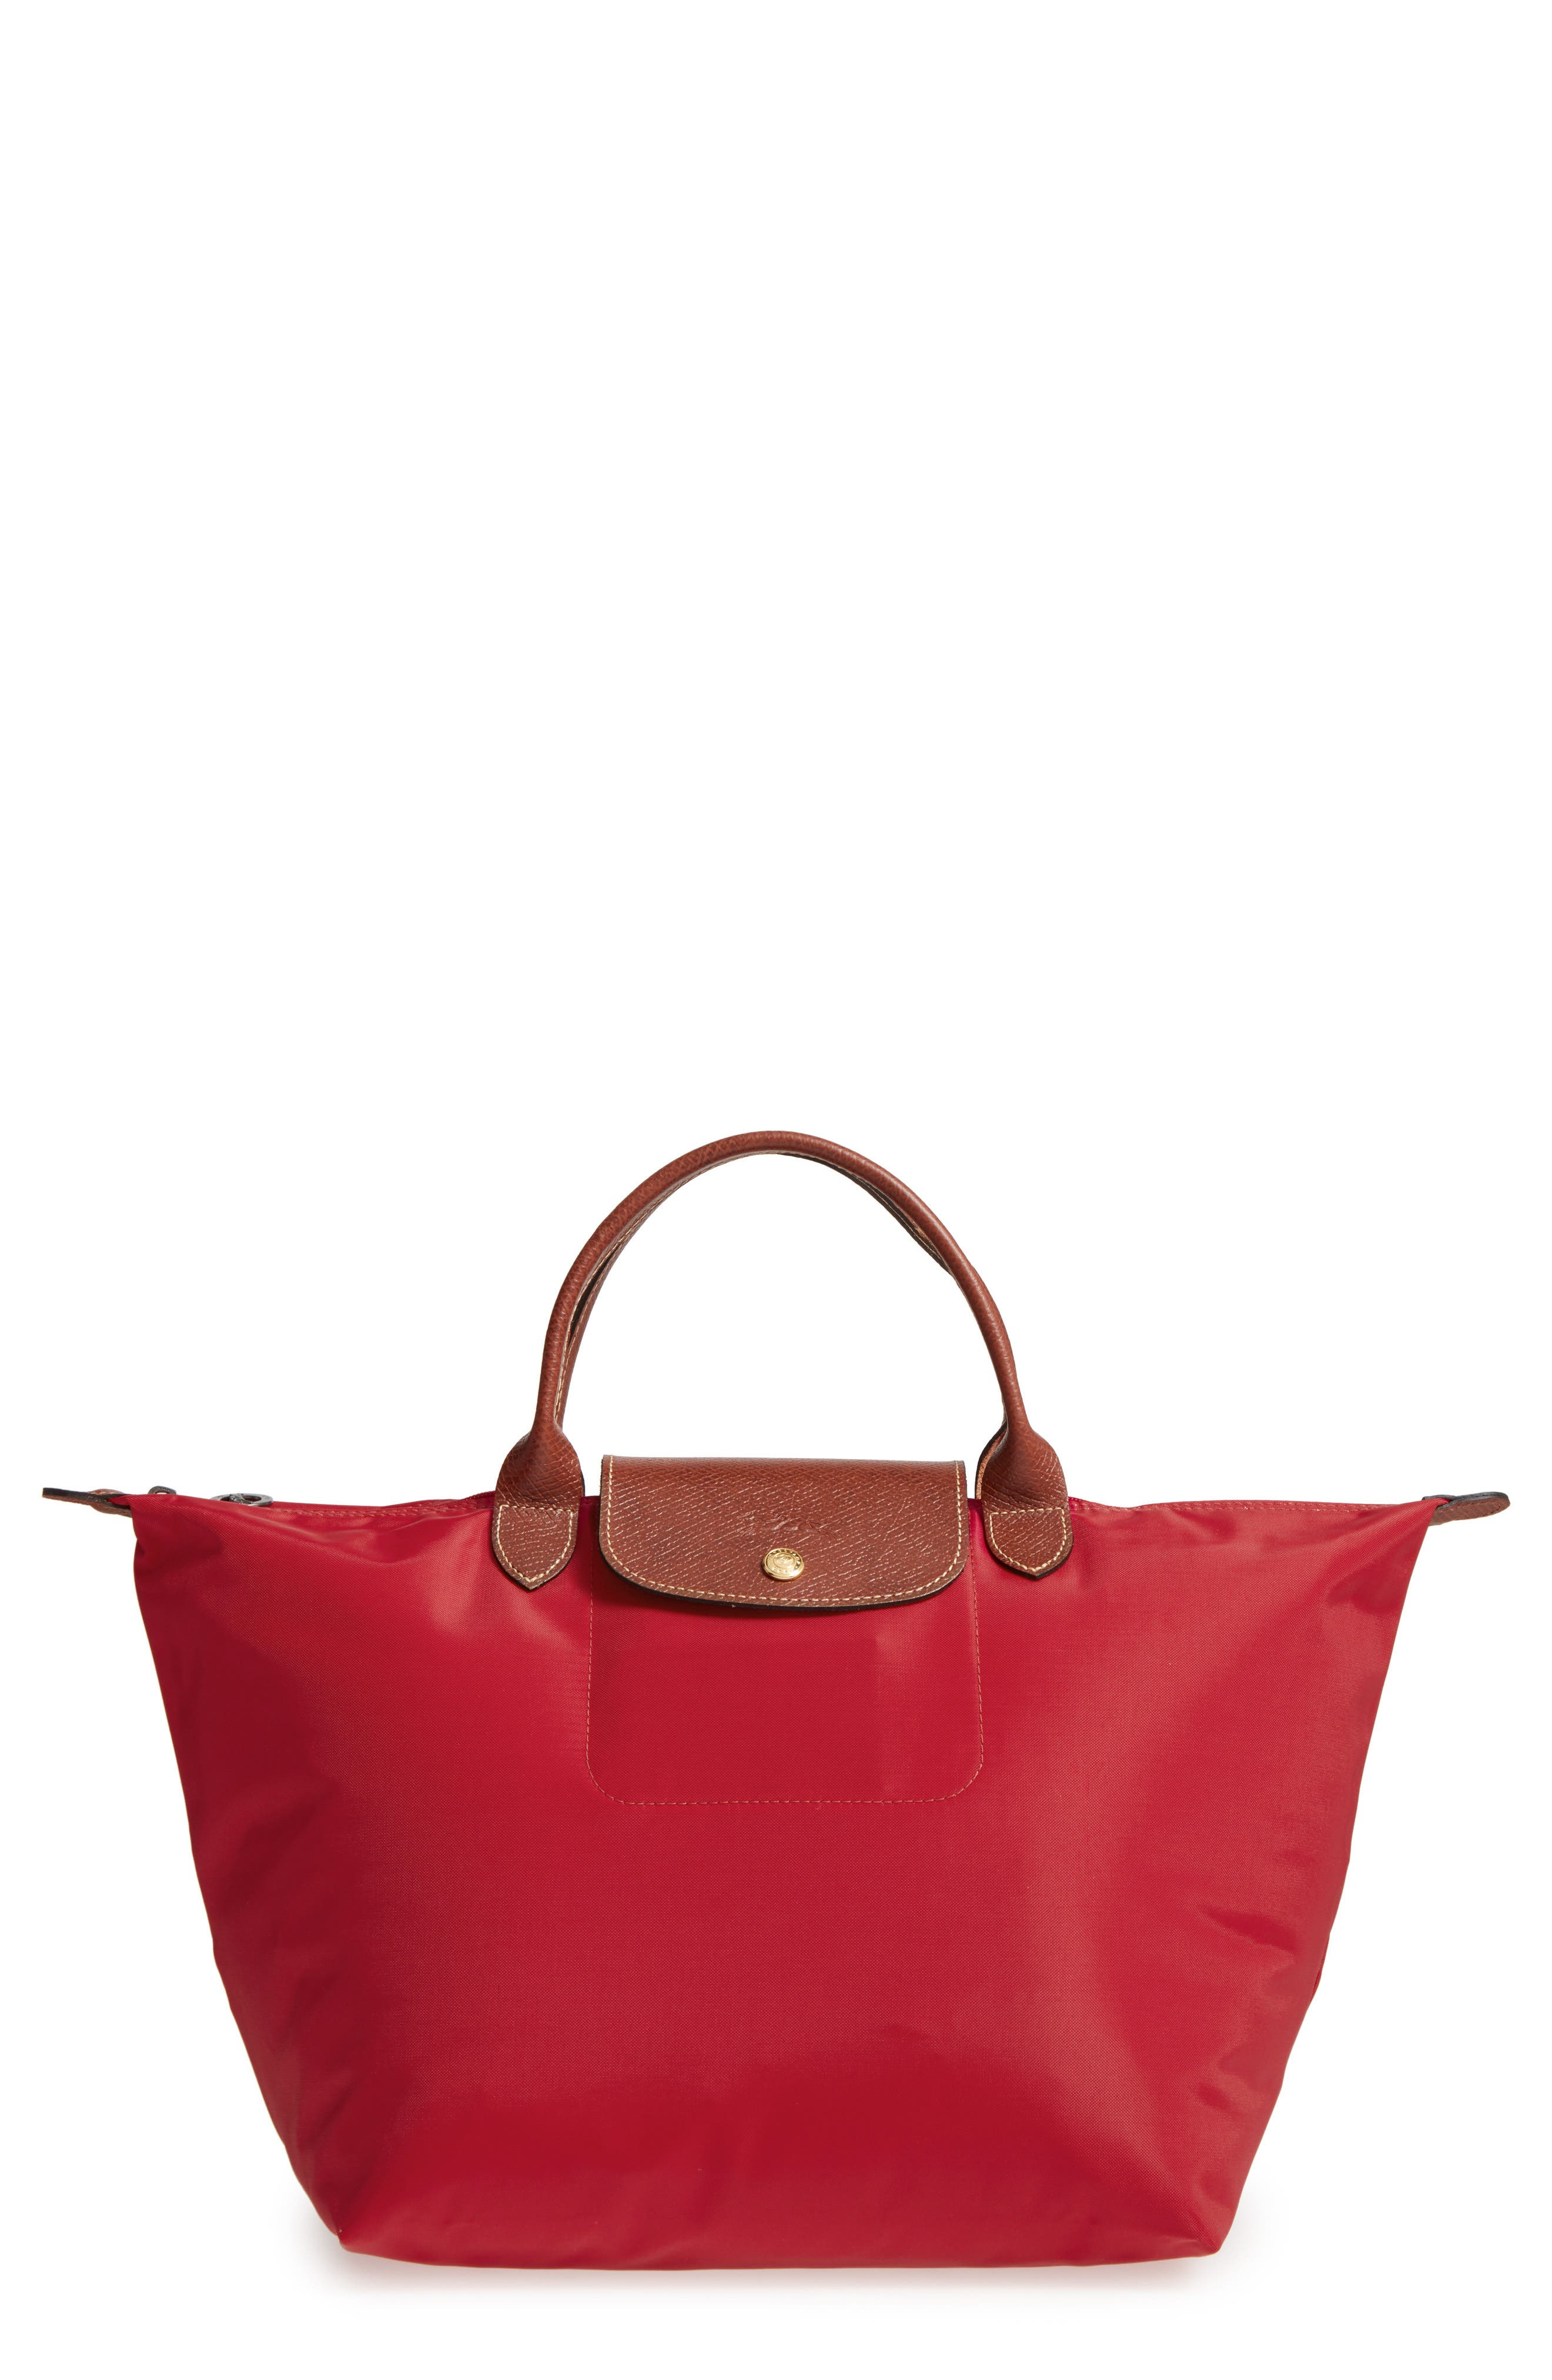 'Medium Le Pliage' Top Handle Tote,                         Main,                         color, RED